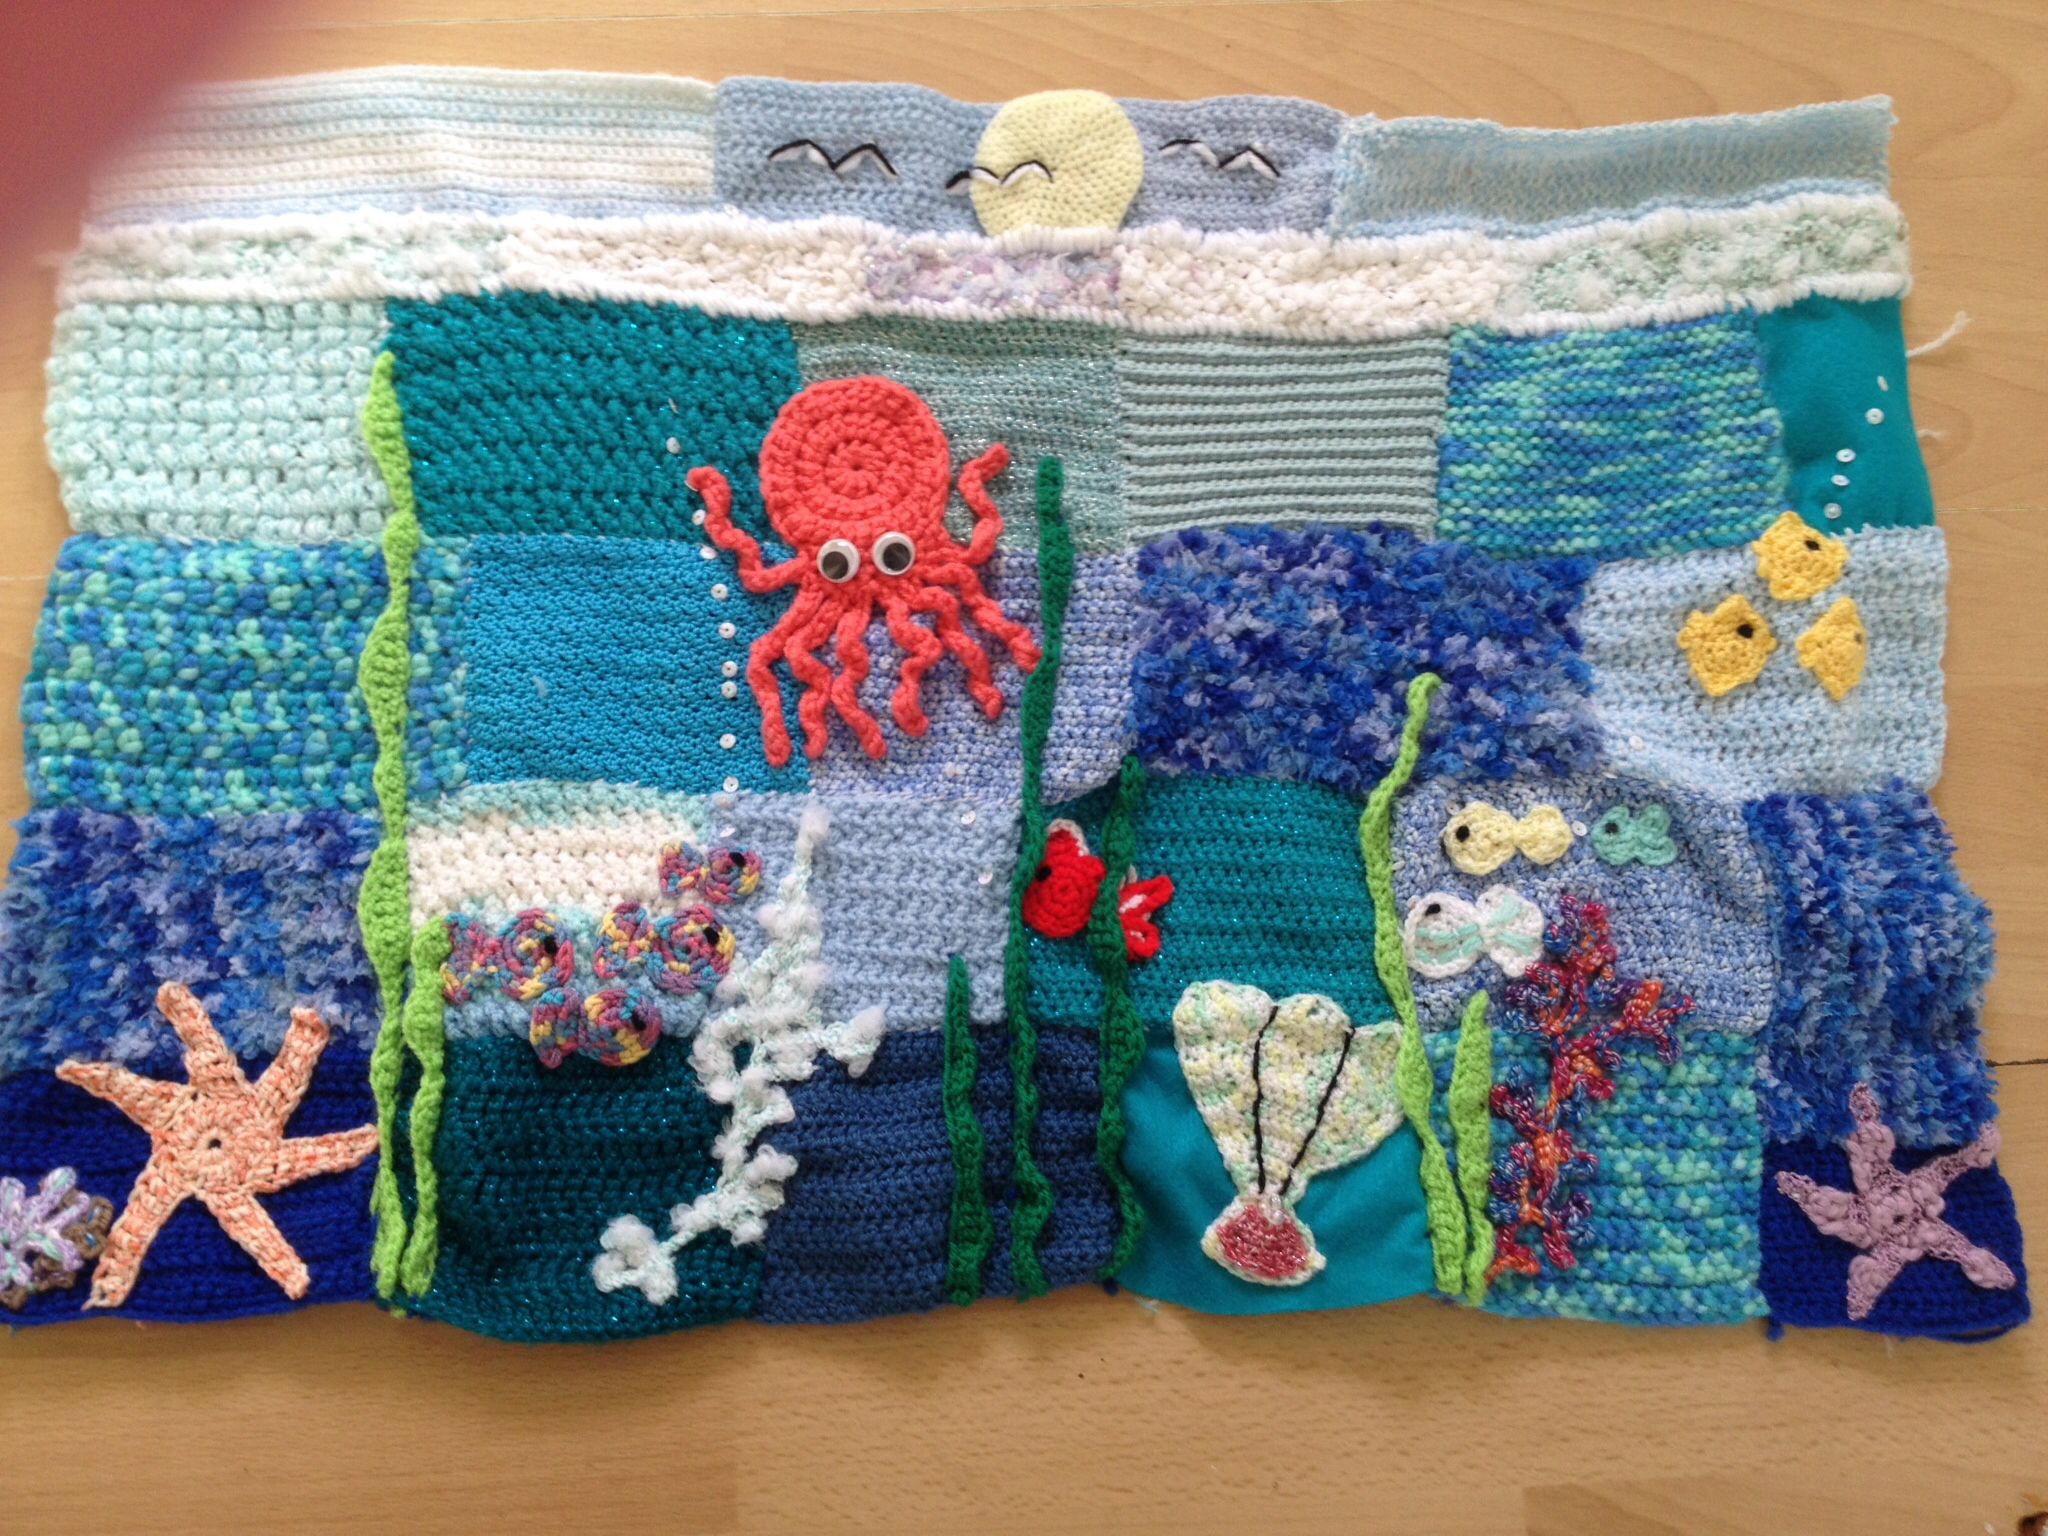 Under The Sea Handmade Crocheted Sensory Weighted Blanket